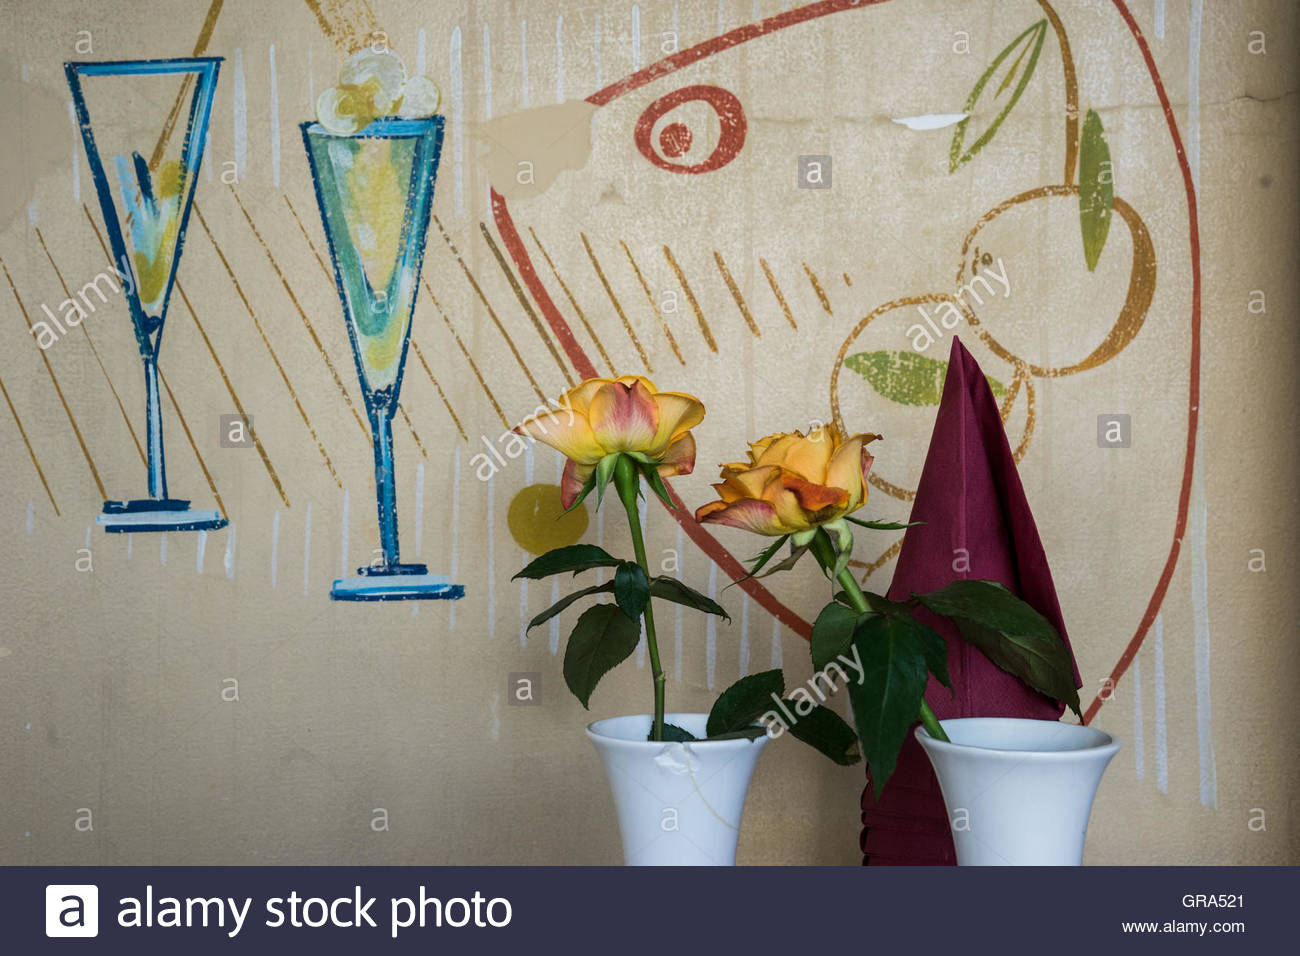 Karl-Marx-Allee, Berlin, Cafe Sybill - Stock Image